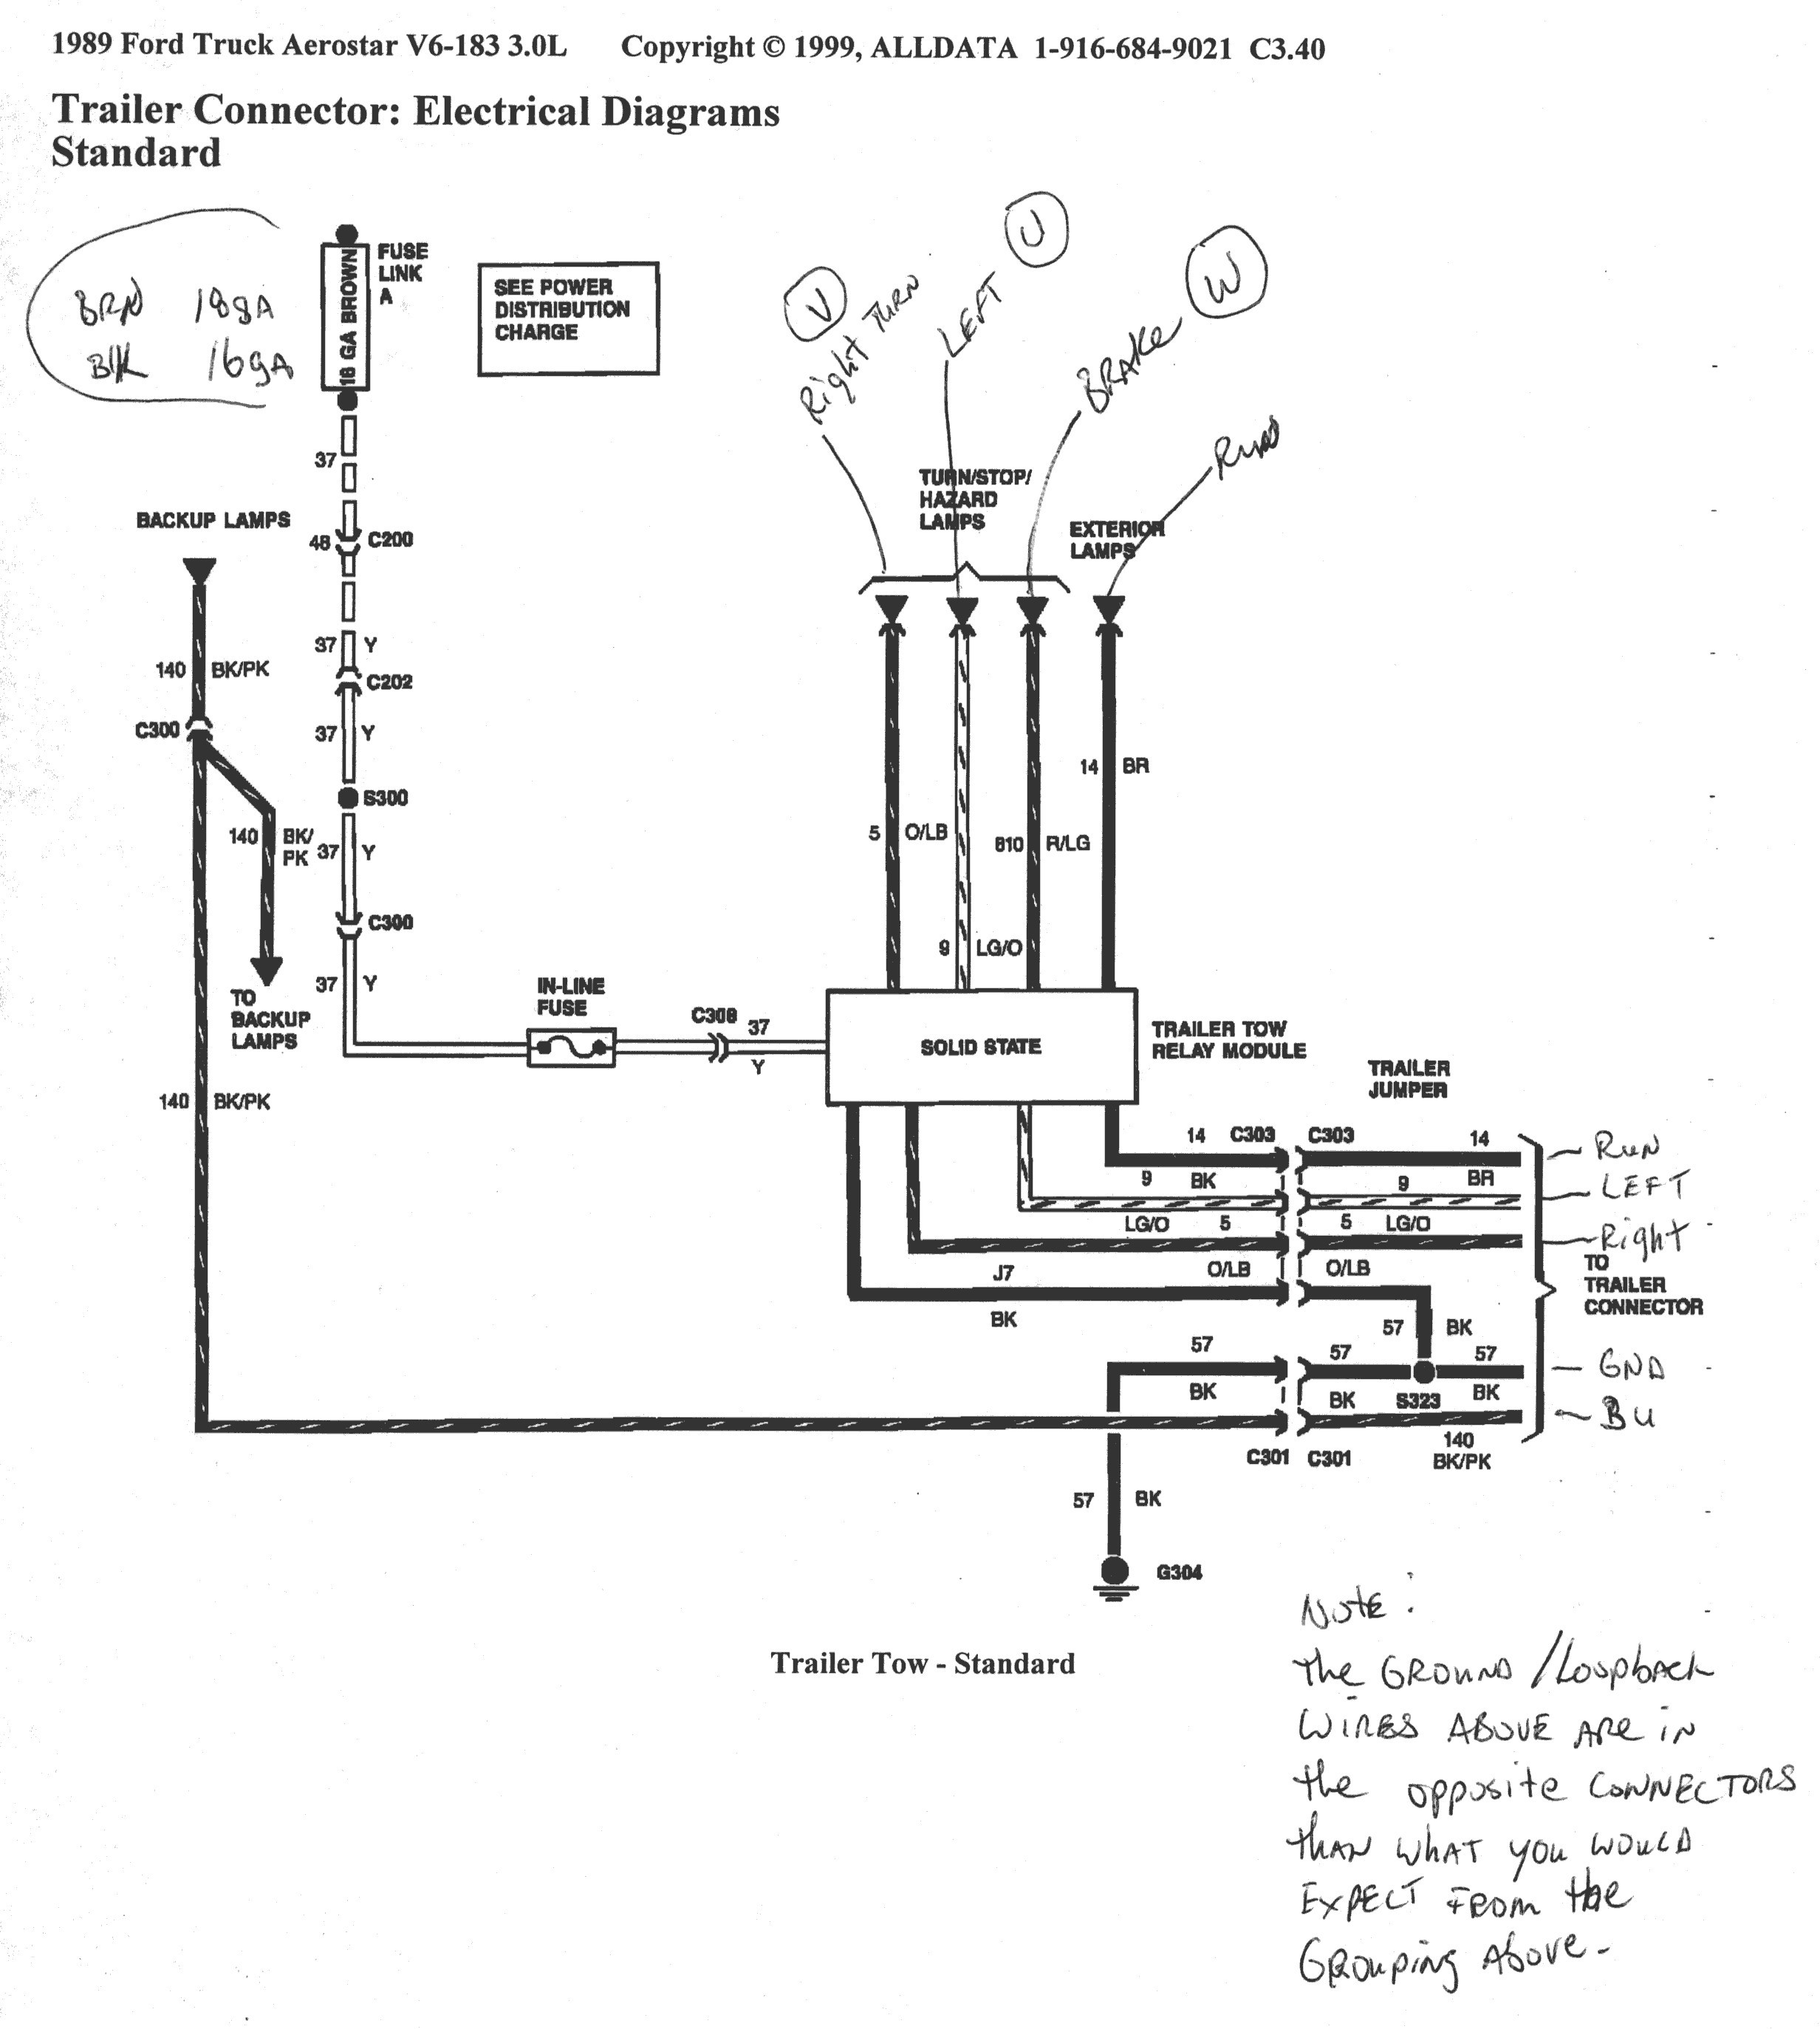 1995 ford f250 trailer wiring diagram Collection-Trailer Connector Wiring Diagram Fresh ford F150 Trailer Wiring Harness Diagram Magnificent F250 and 13-h